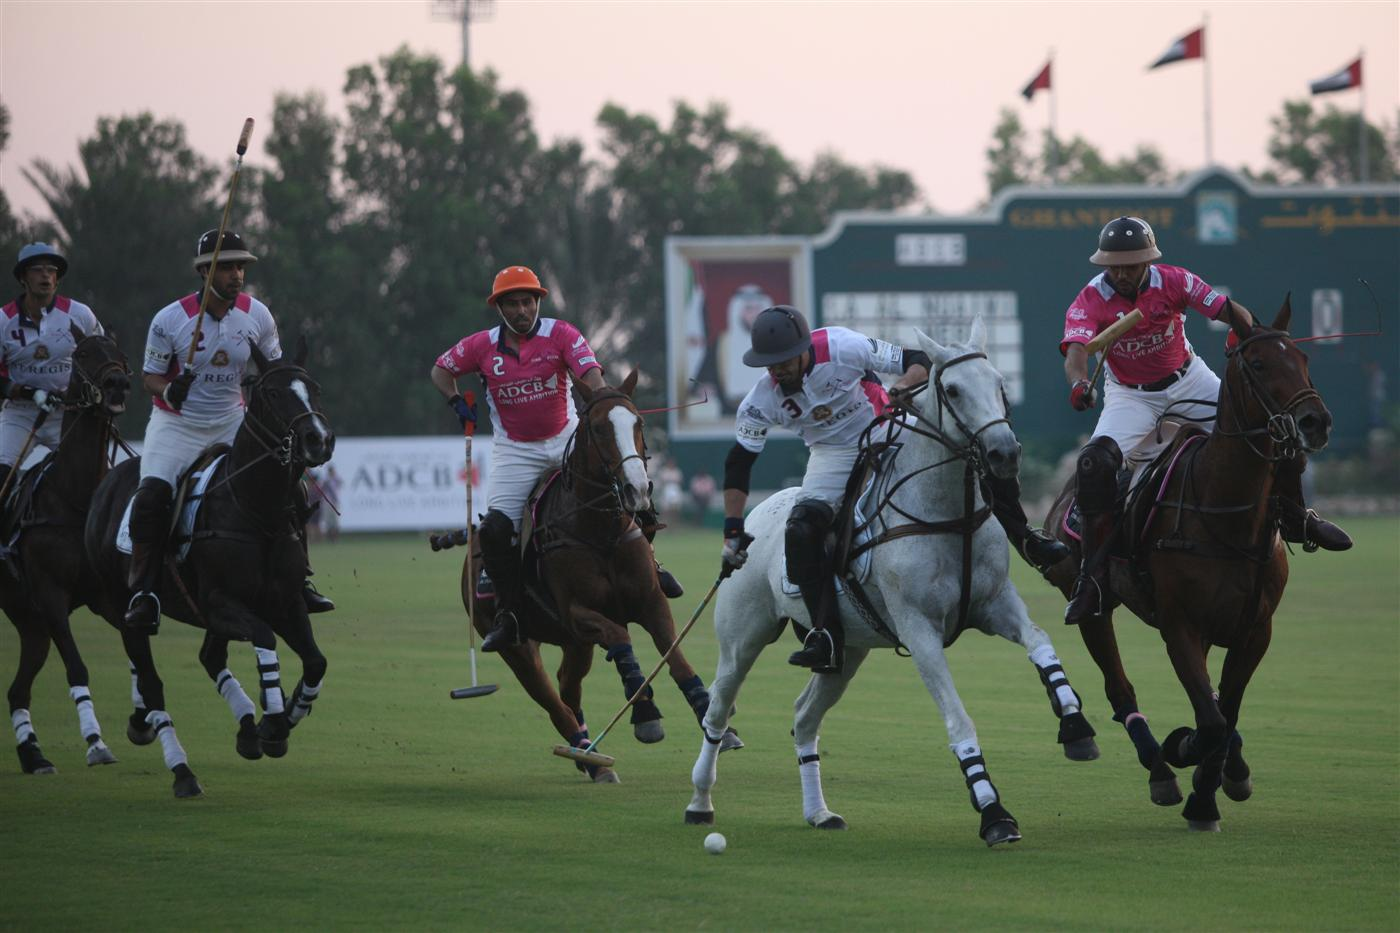 Pink Polo : St Regis Claim Pink Polo Crown At First Attempt